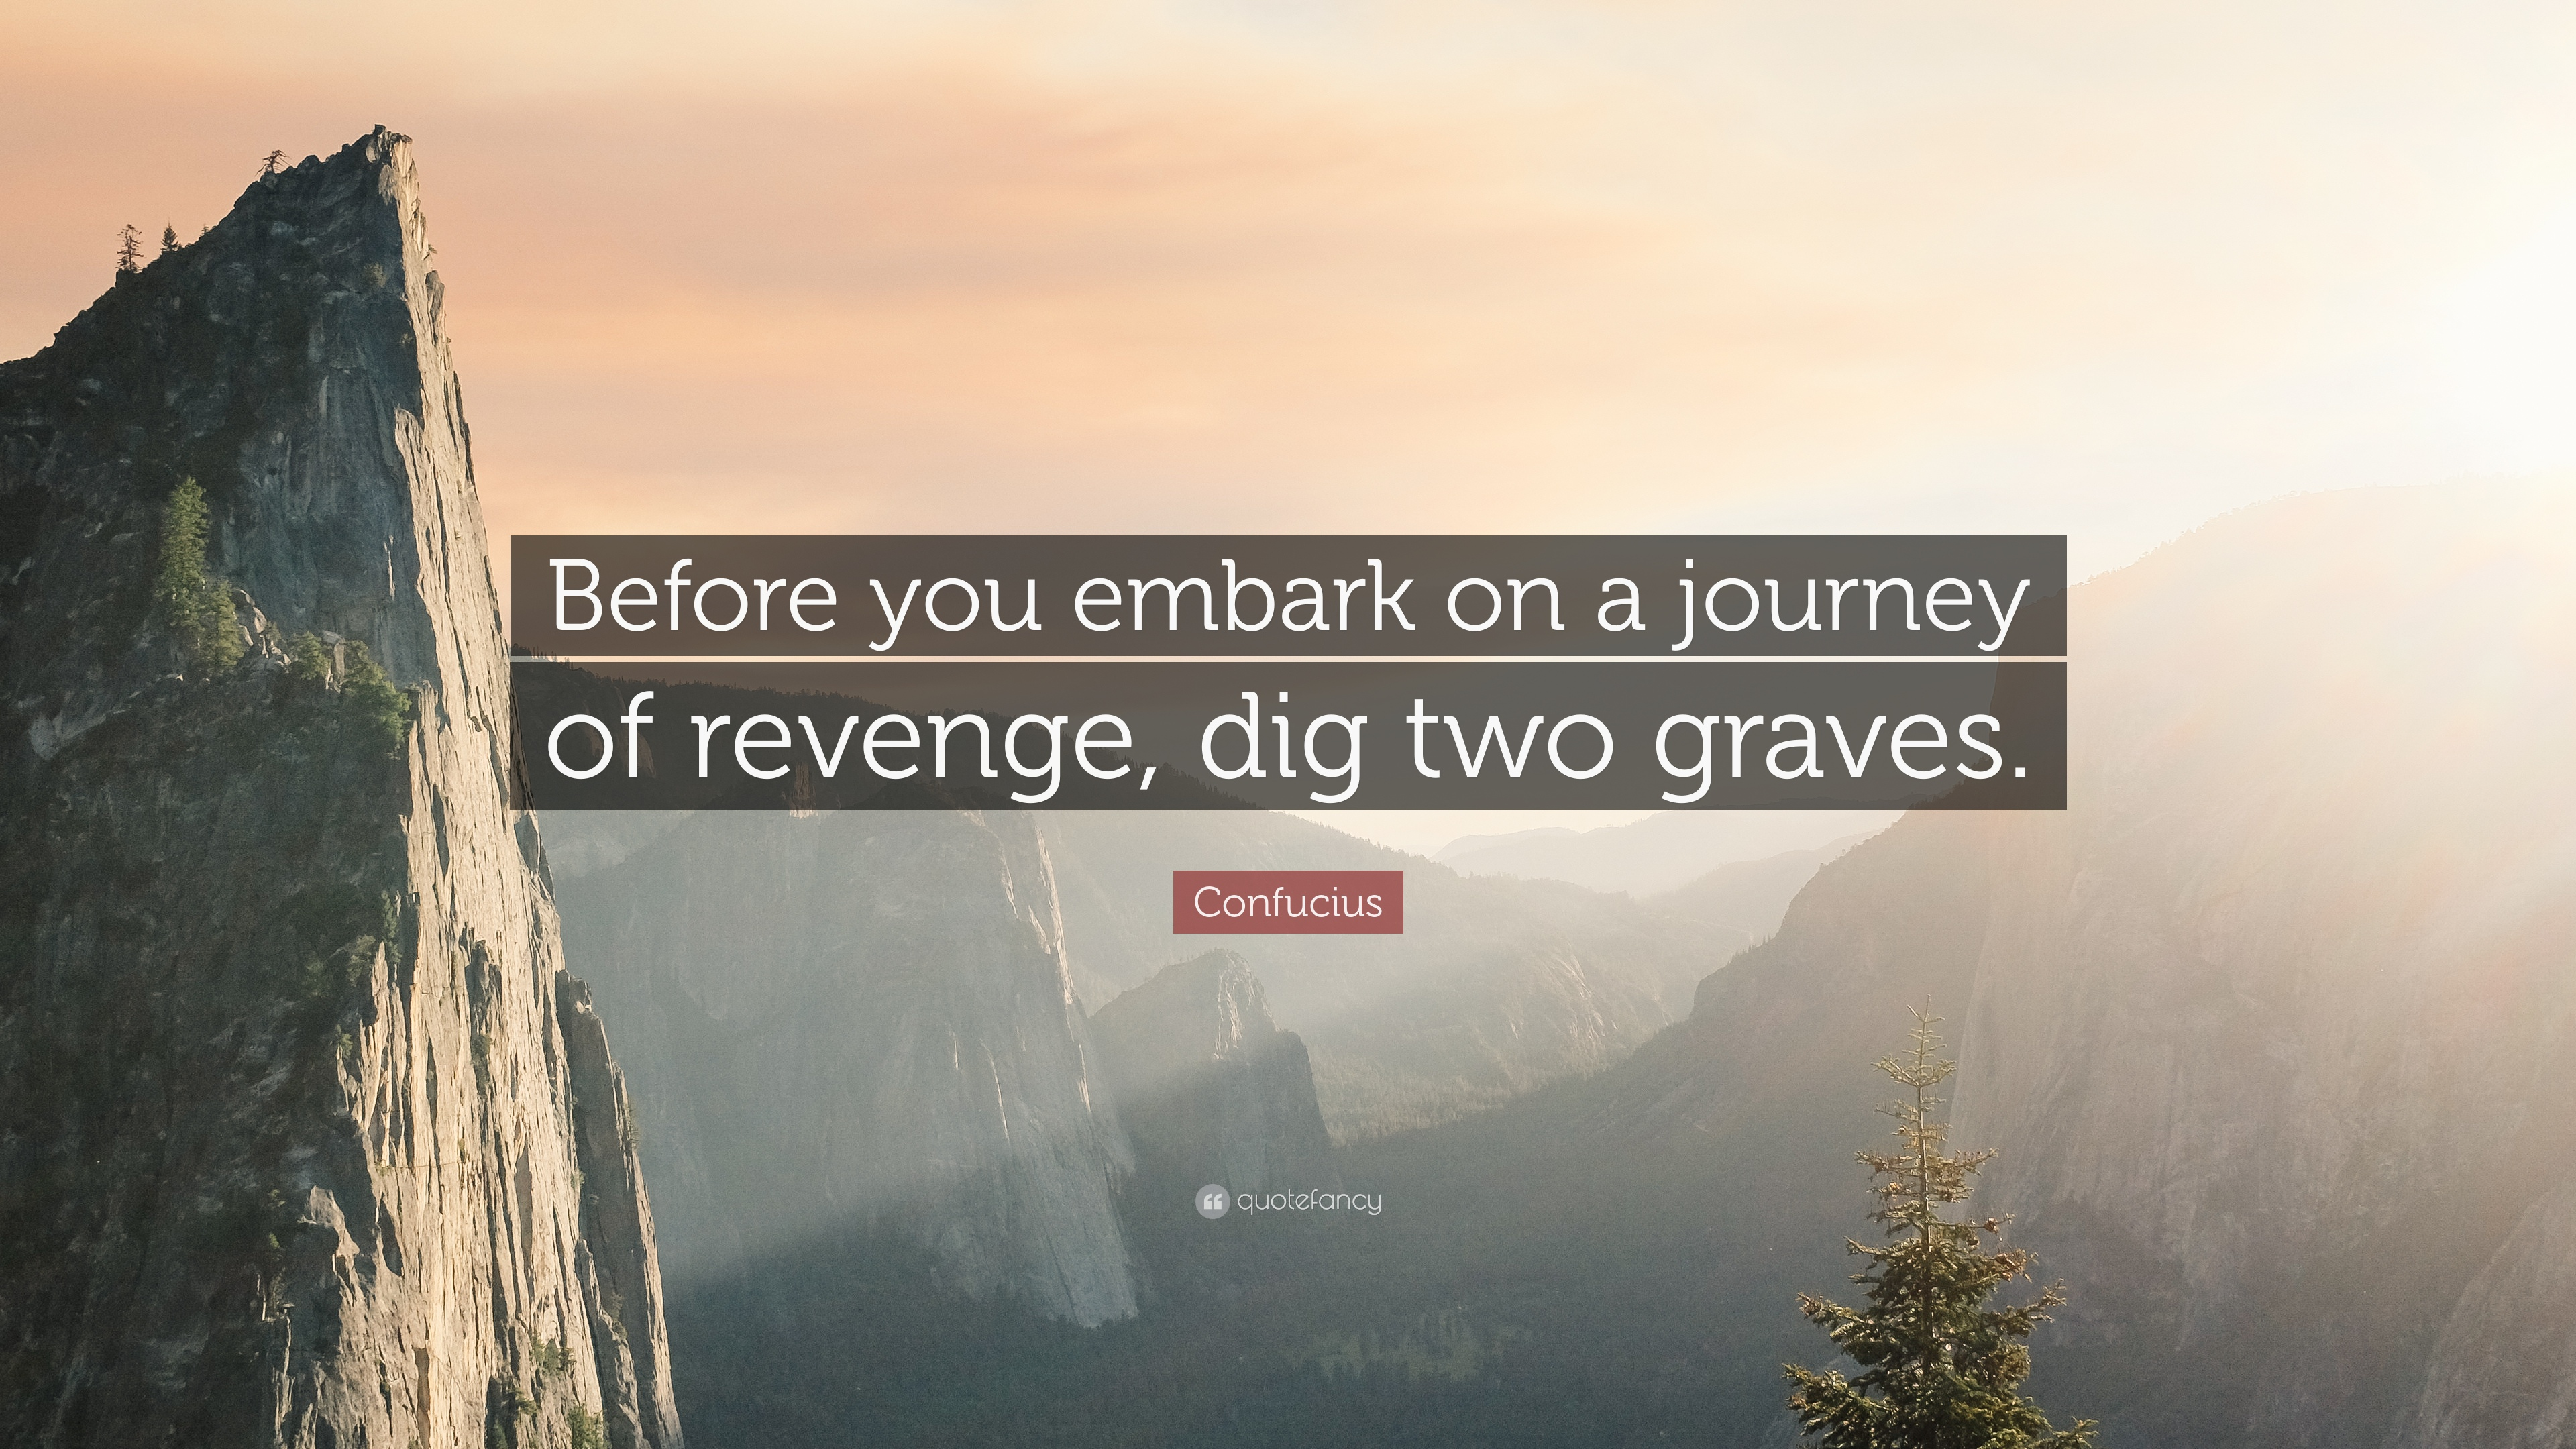 Confucius Quote Before You Embark On A Journey Of Revenge Dig Two Graves